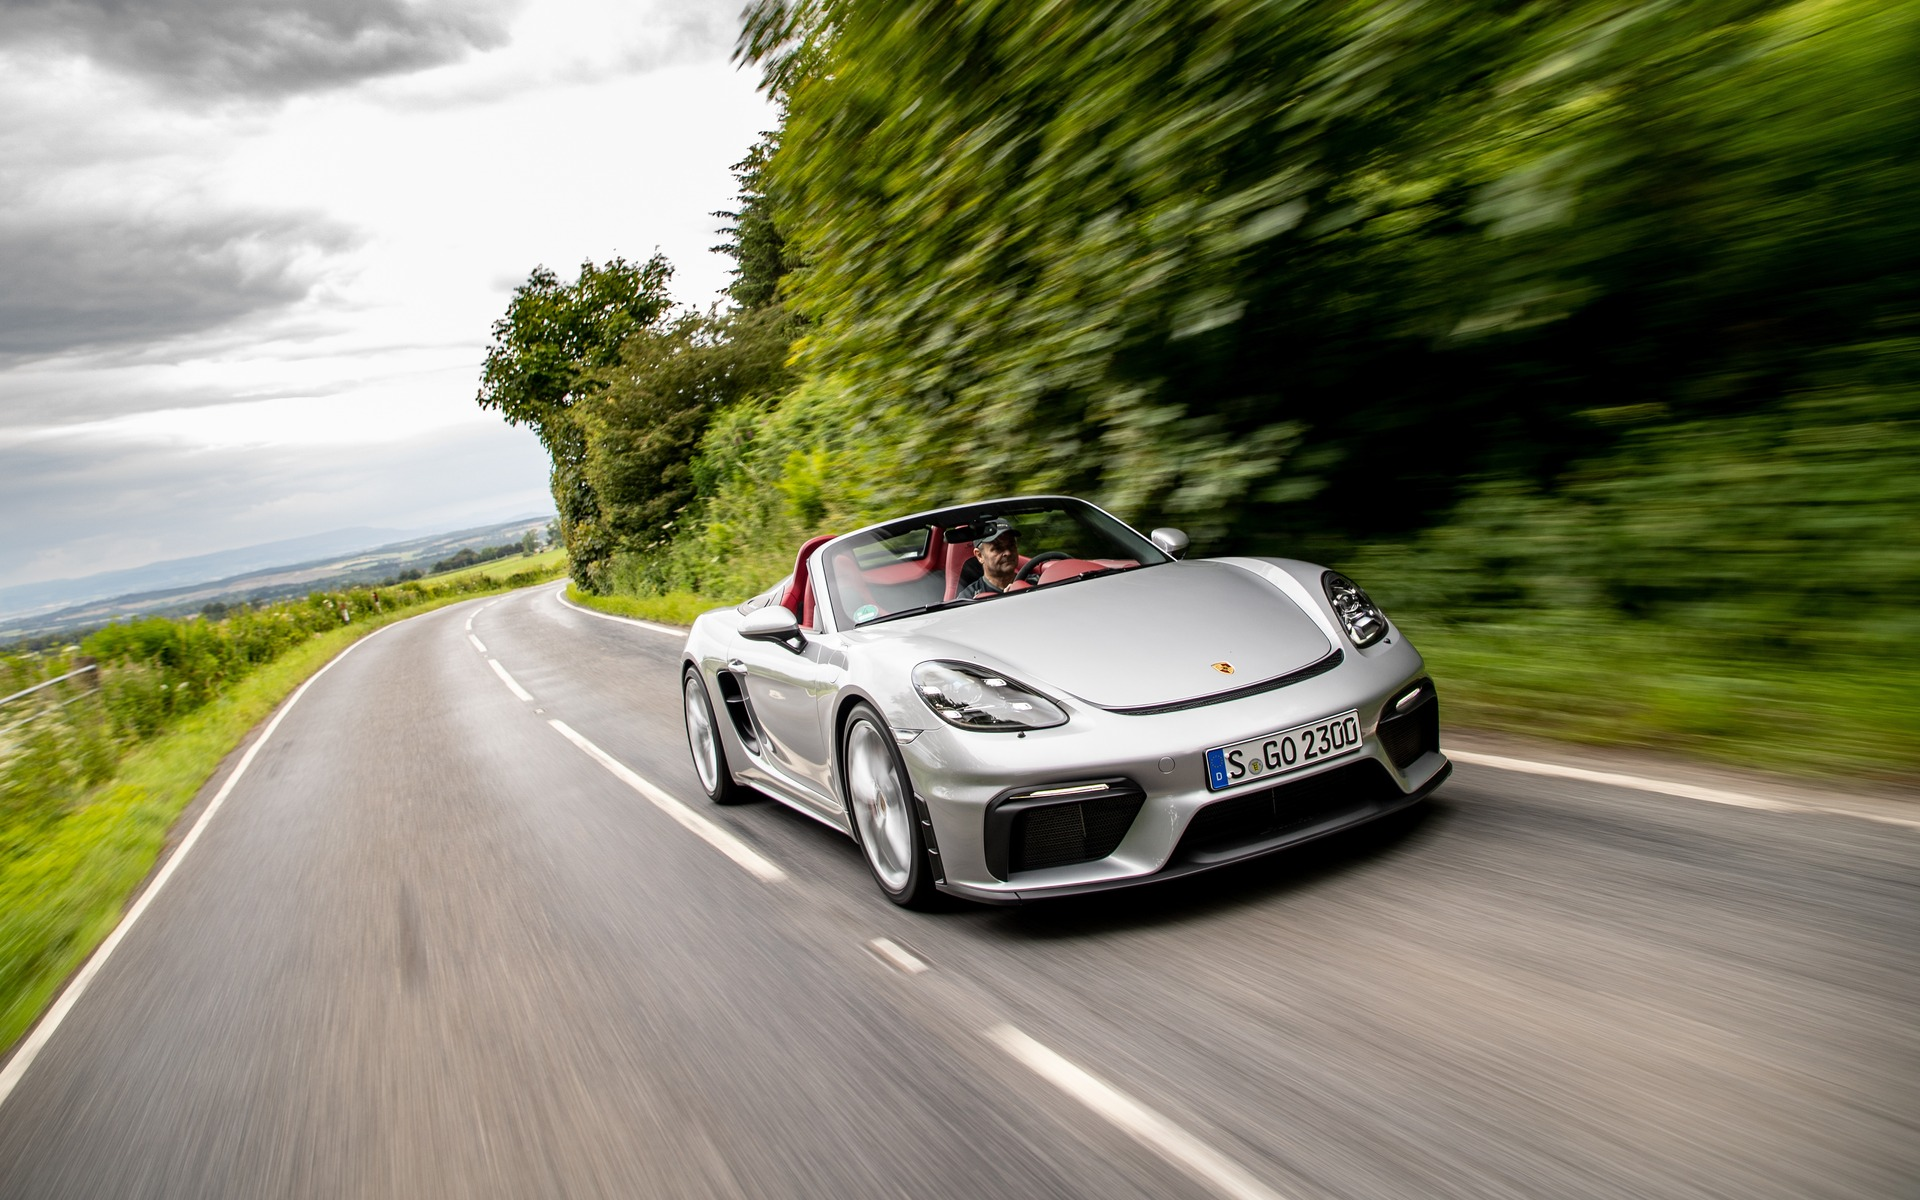 Marc LaChapelle from The Car Guide reviews the Porsche 718 Boxter & Cayman